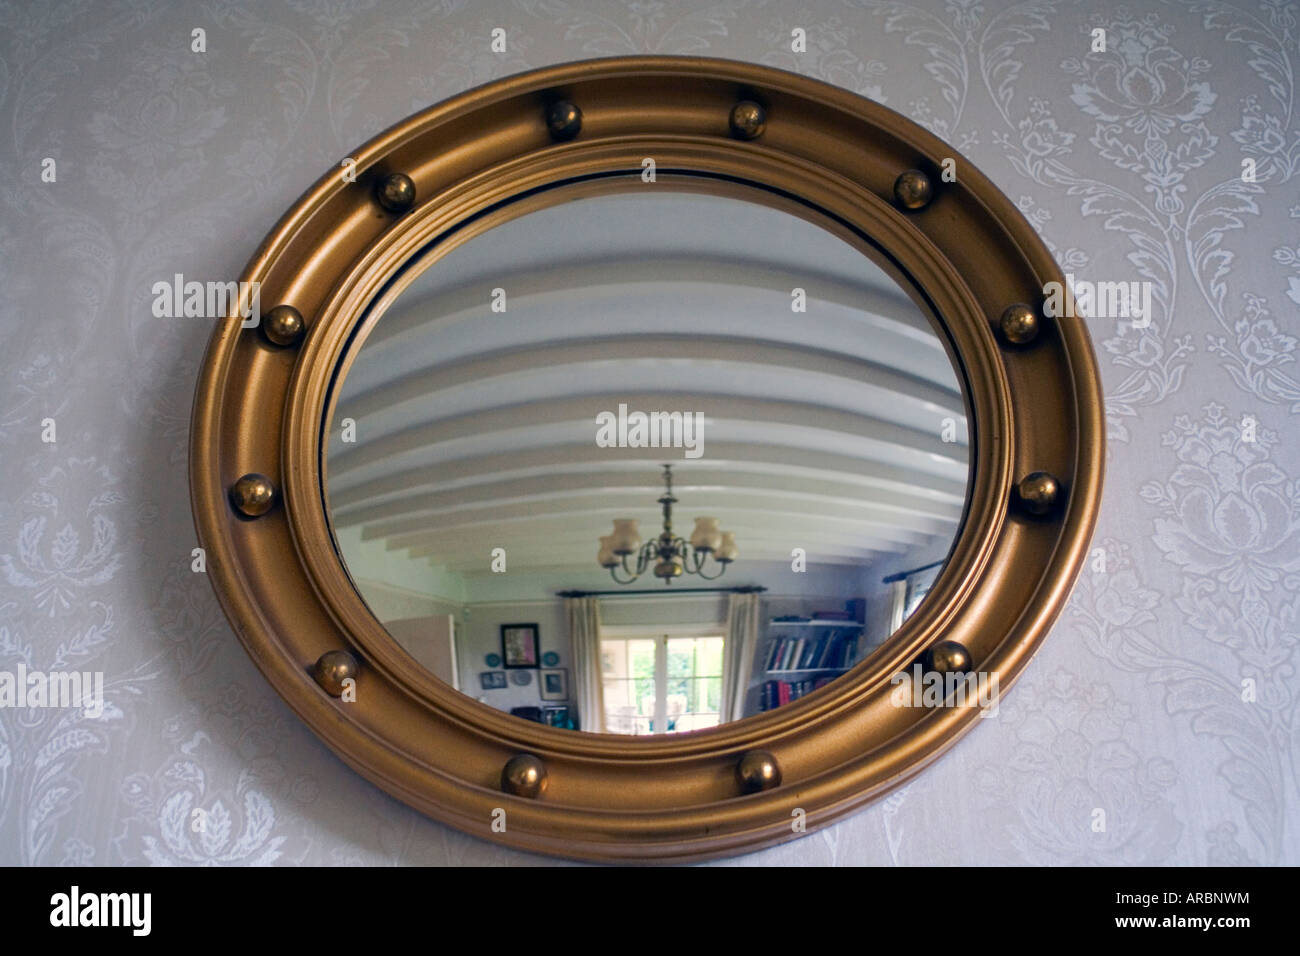 A Framed Convex Mirror - Stock Image